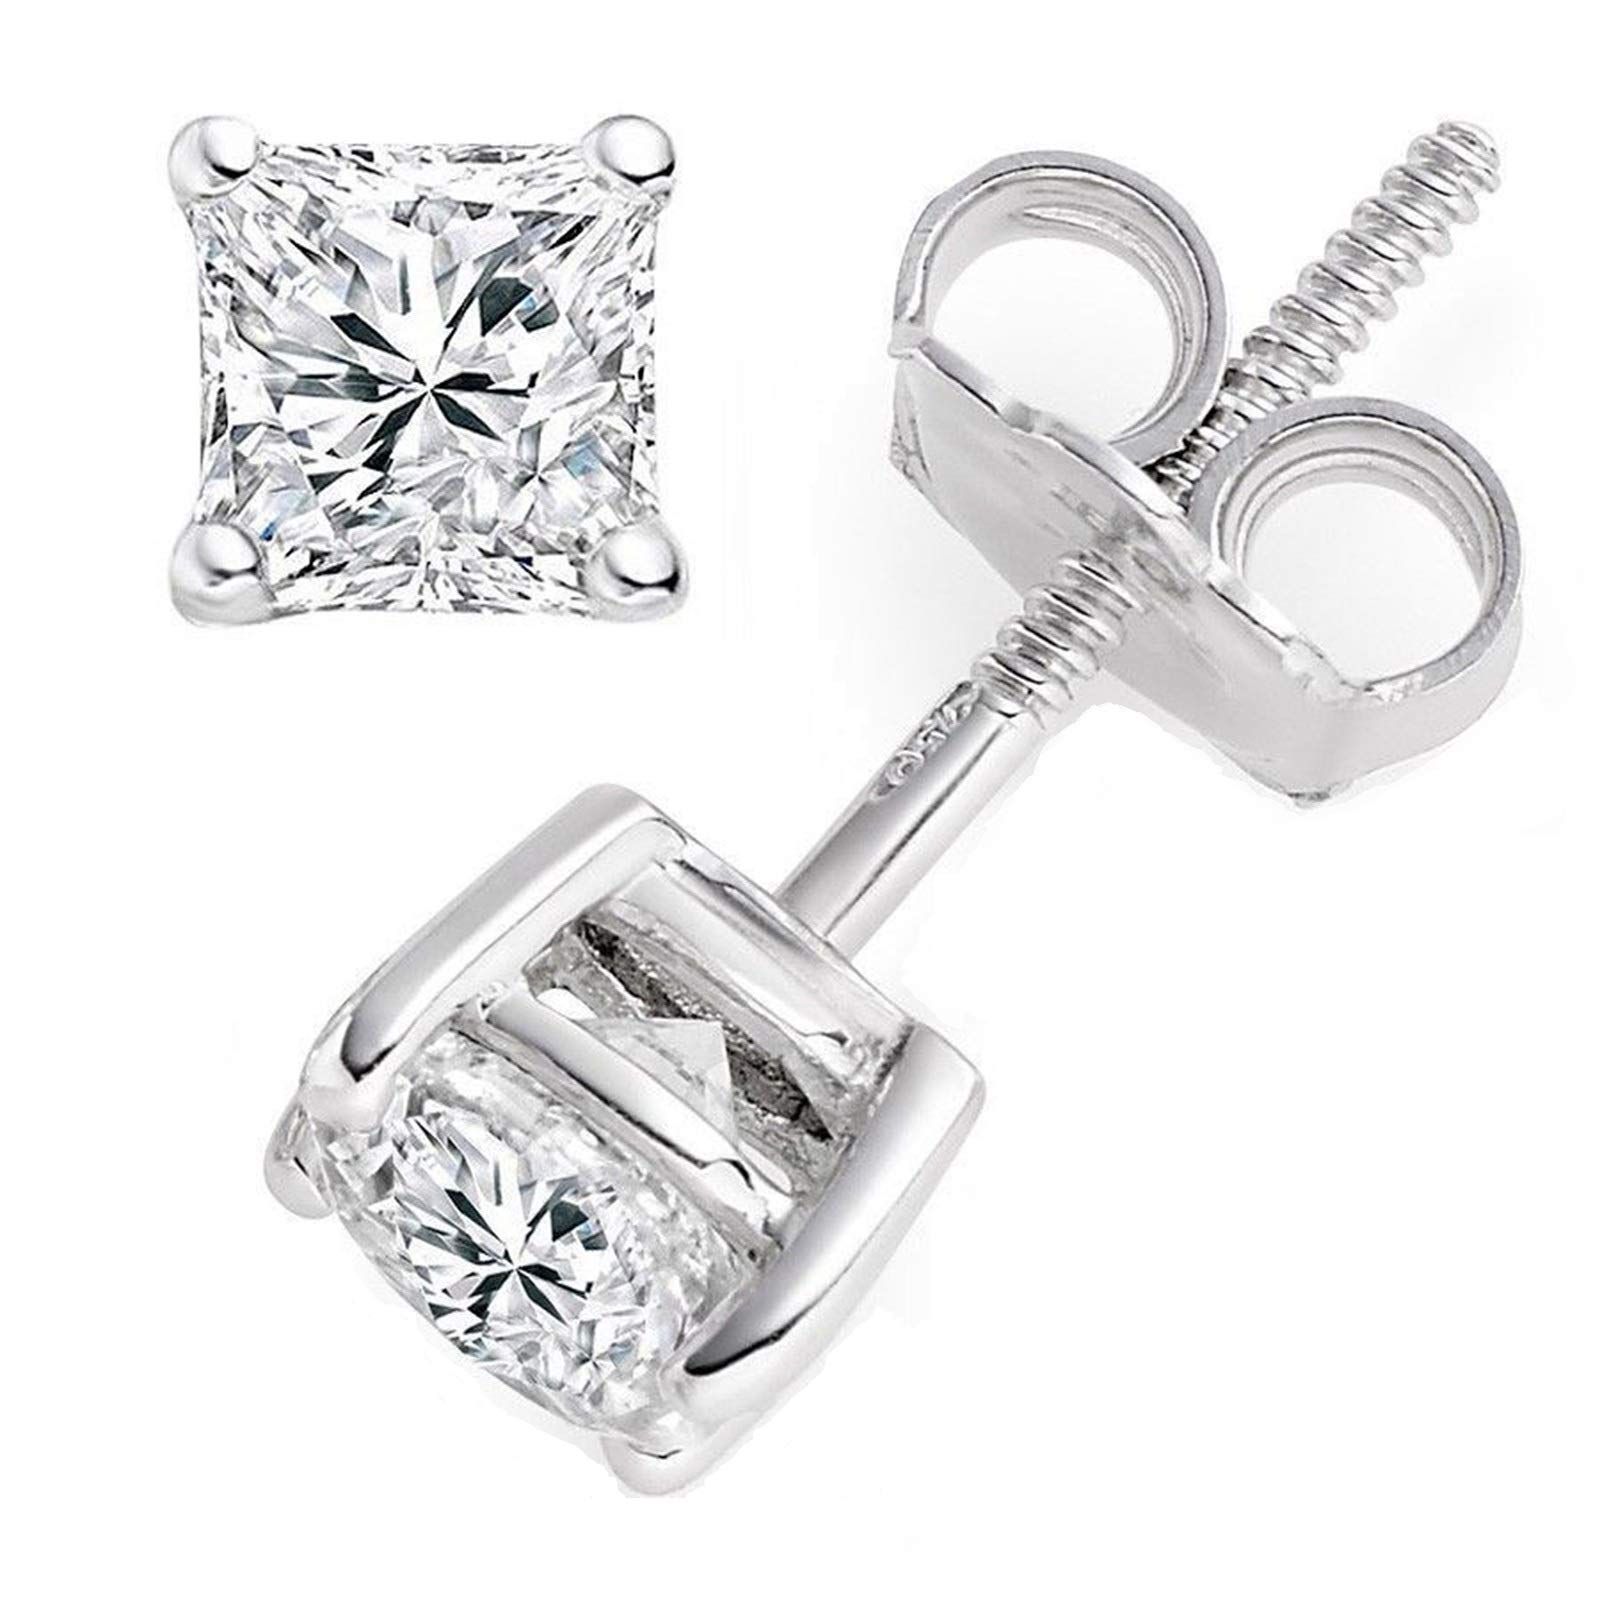 1.10 CT Princess Brilliant Cut CZ Solitaire Stud Earrings in 14k White Gold Screw Back